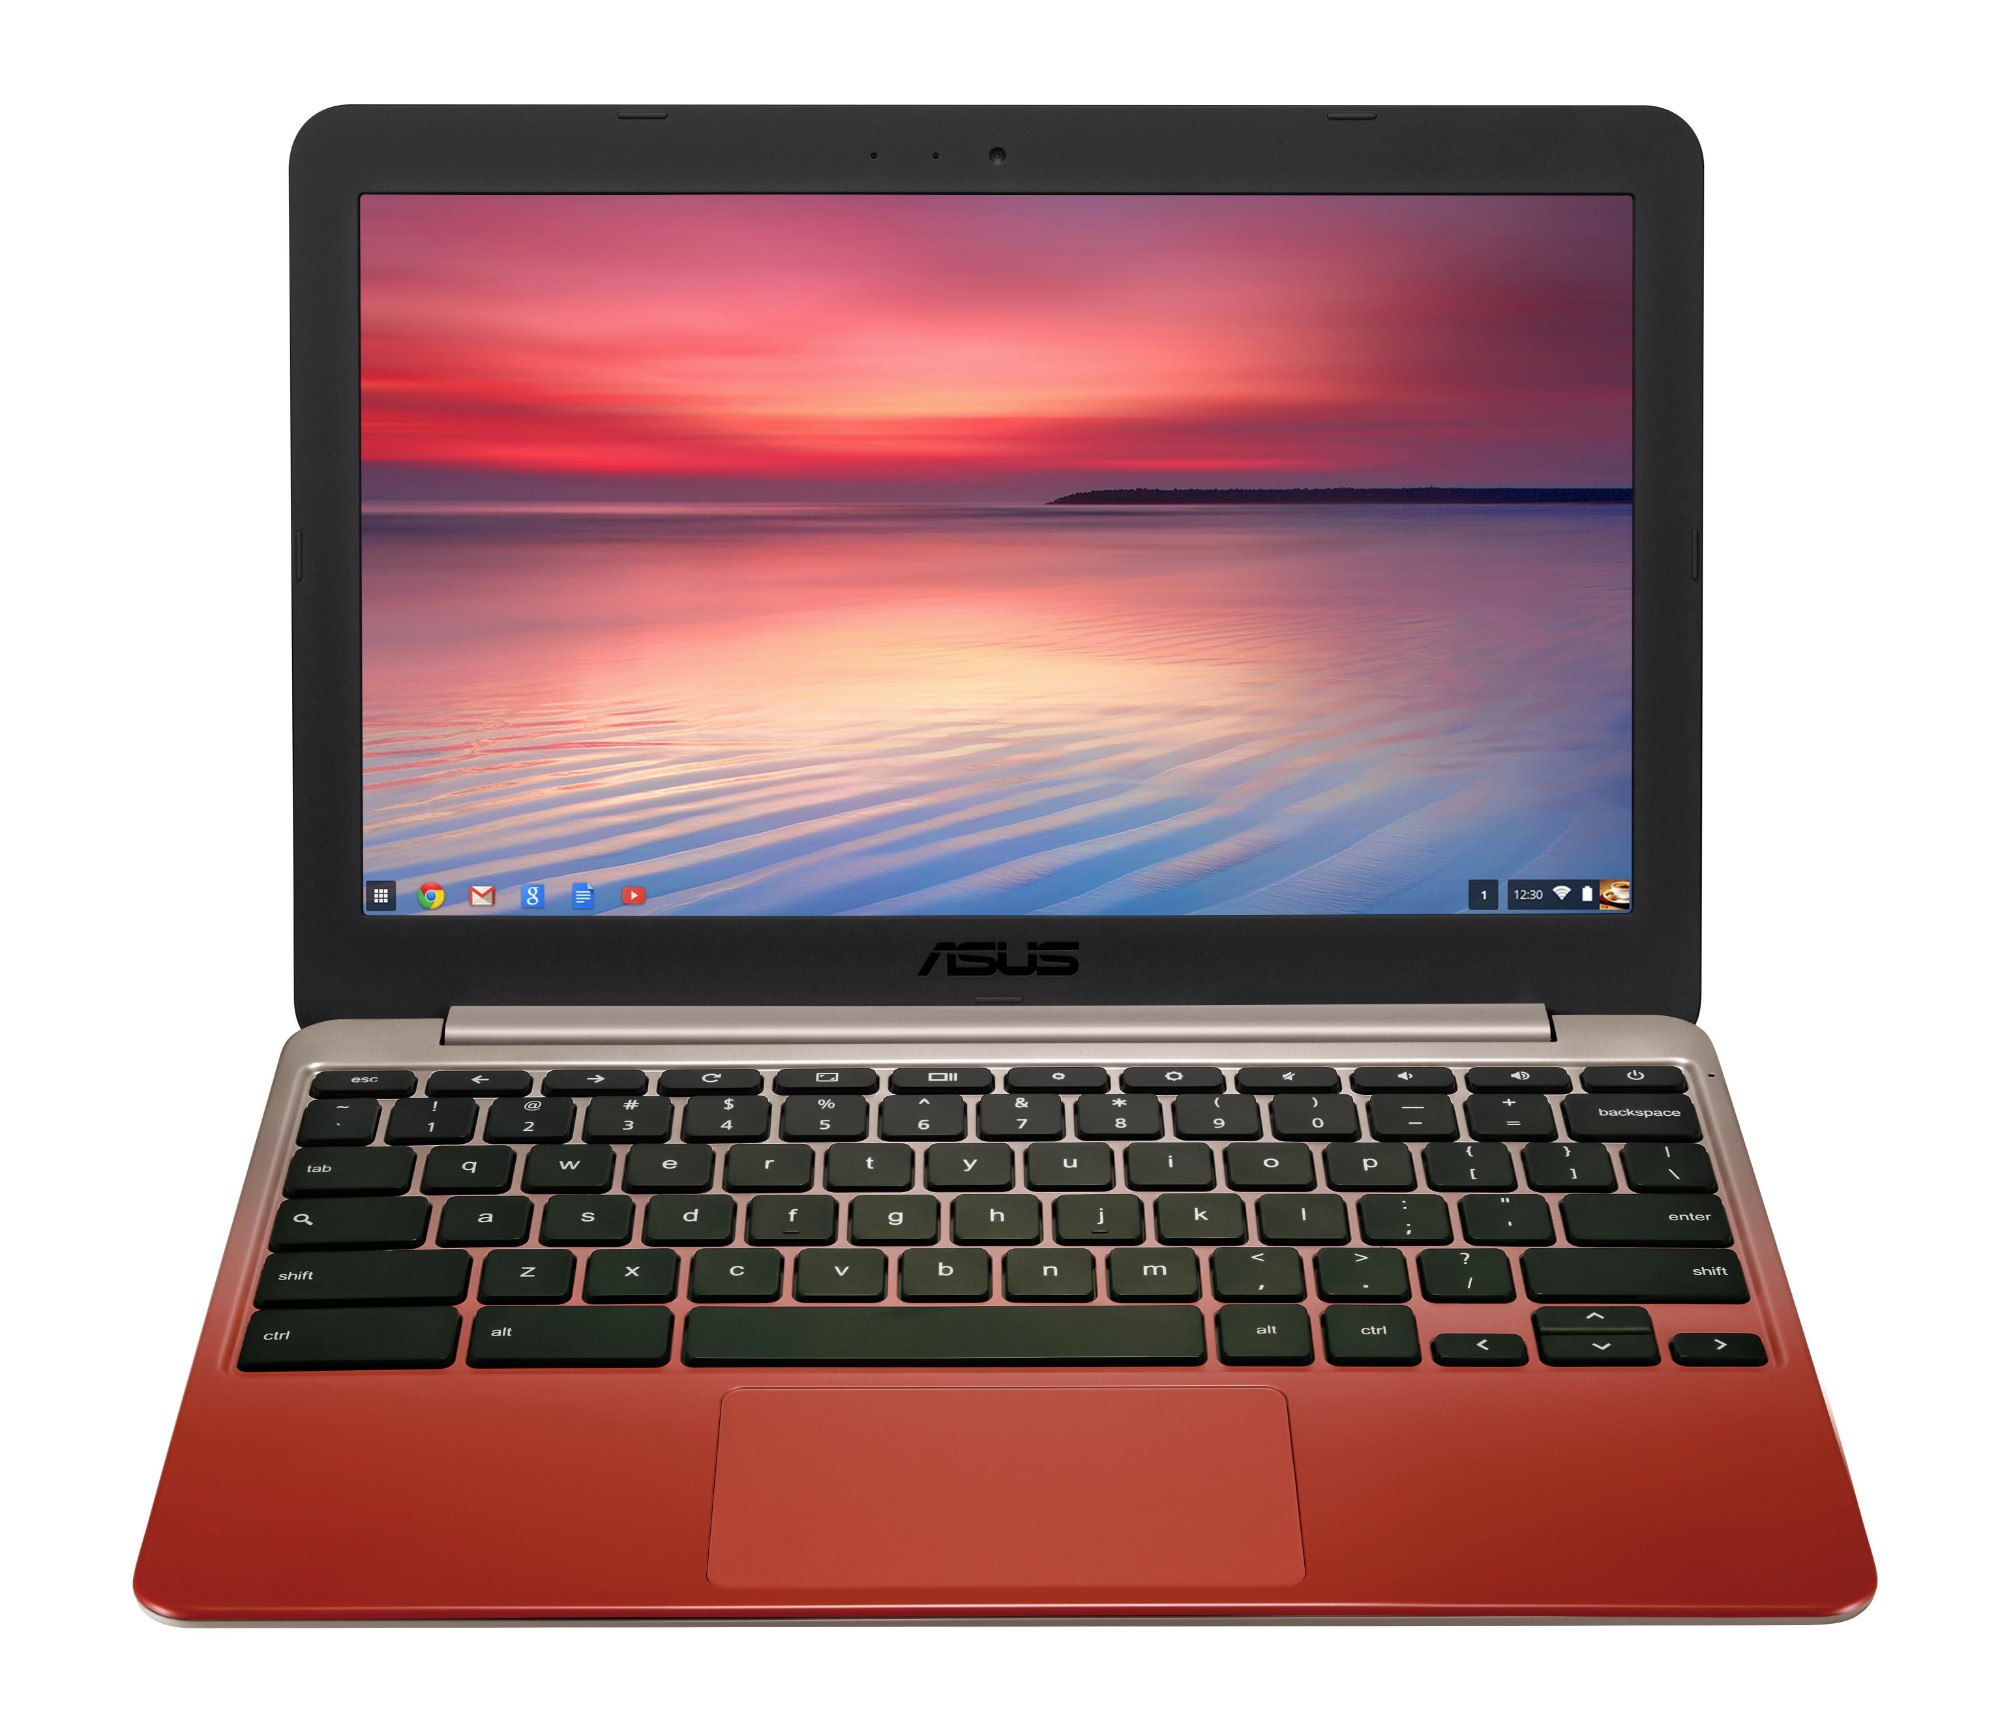 "ASUS Chromebook C201PA-FD0015 RK3288C 11.6"" 1366 x 768pixels Gold,Red Chromebook"